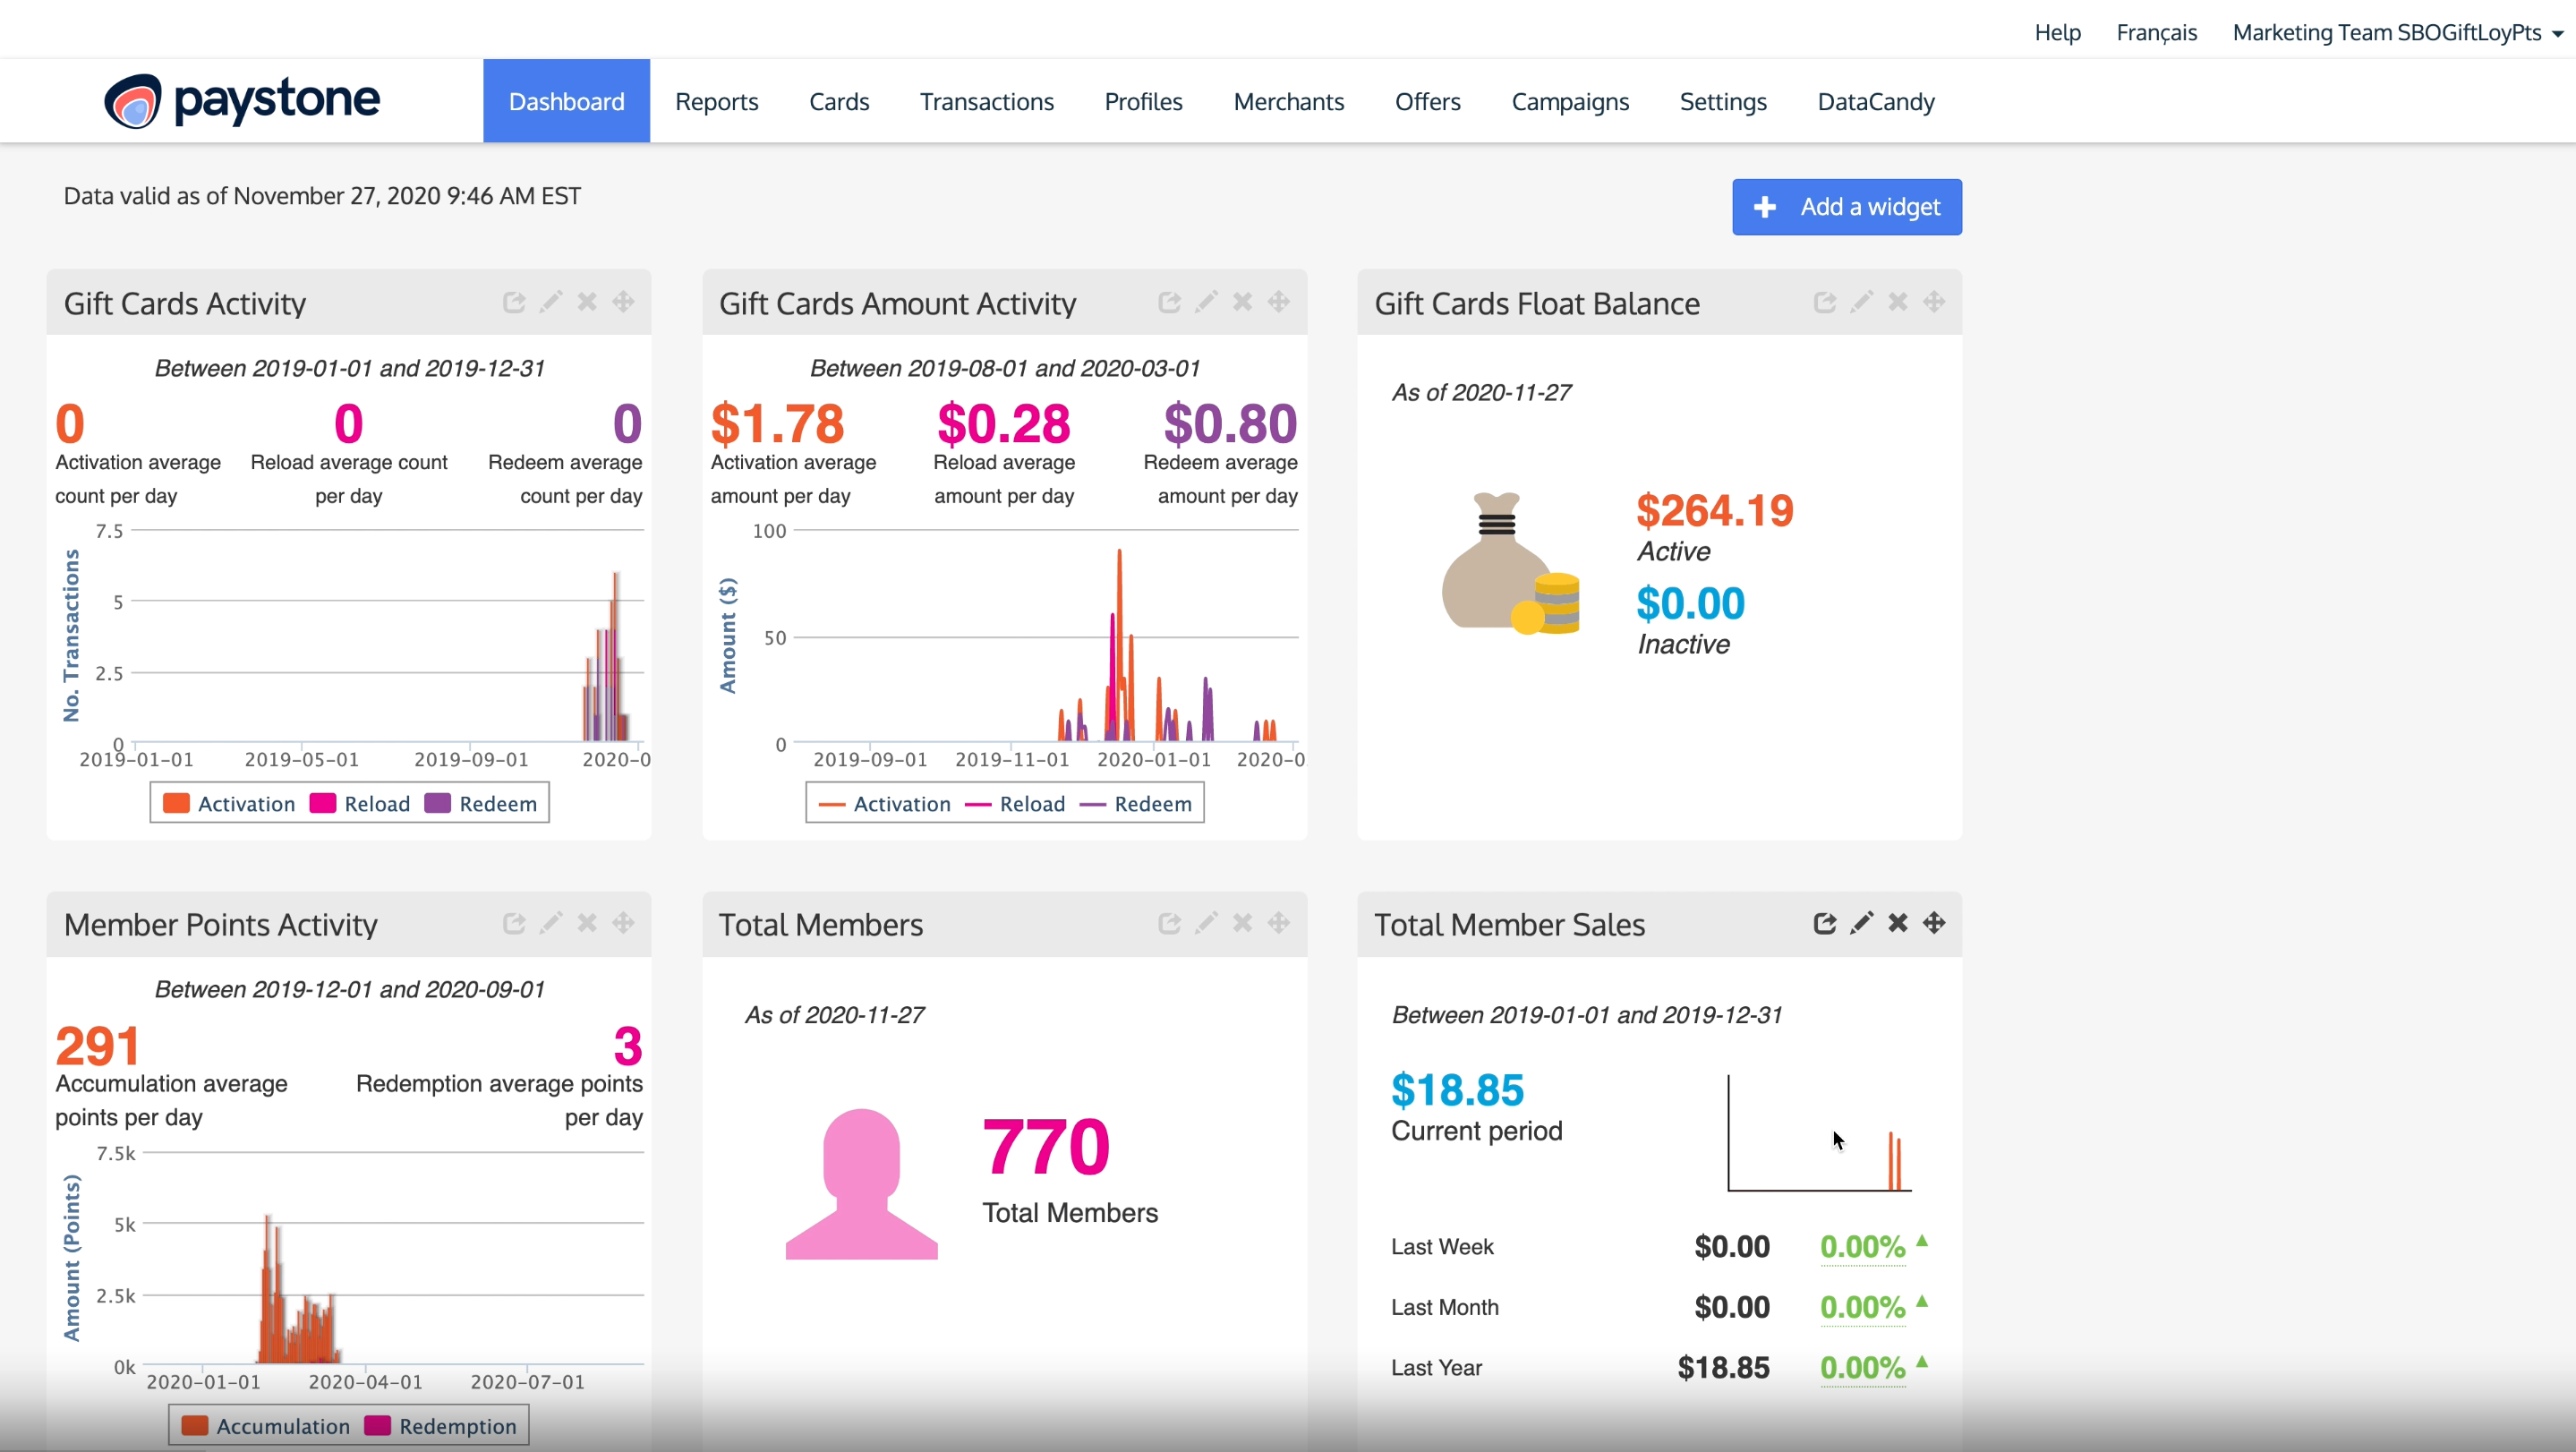 Paystone Software - Paystone Reporting Dashboard (BackOffice)